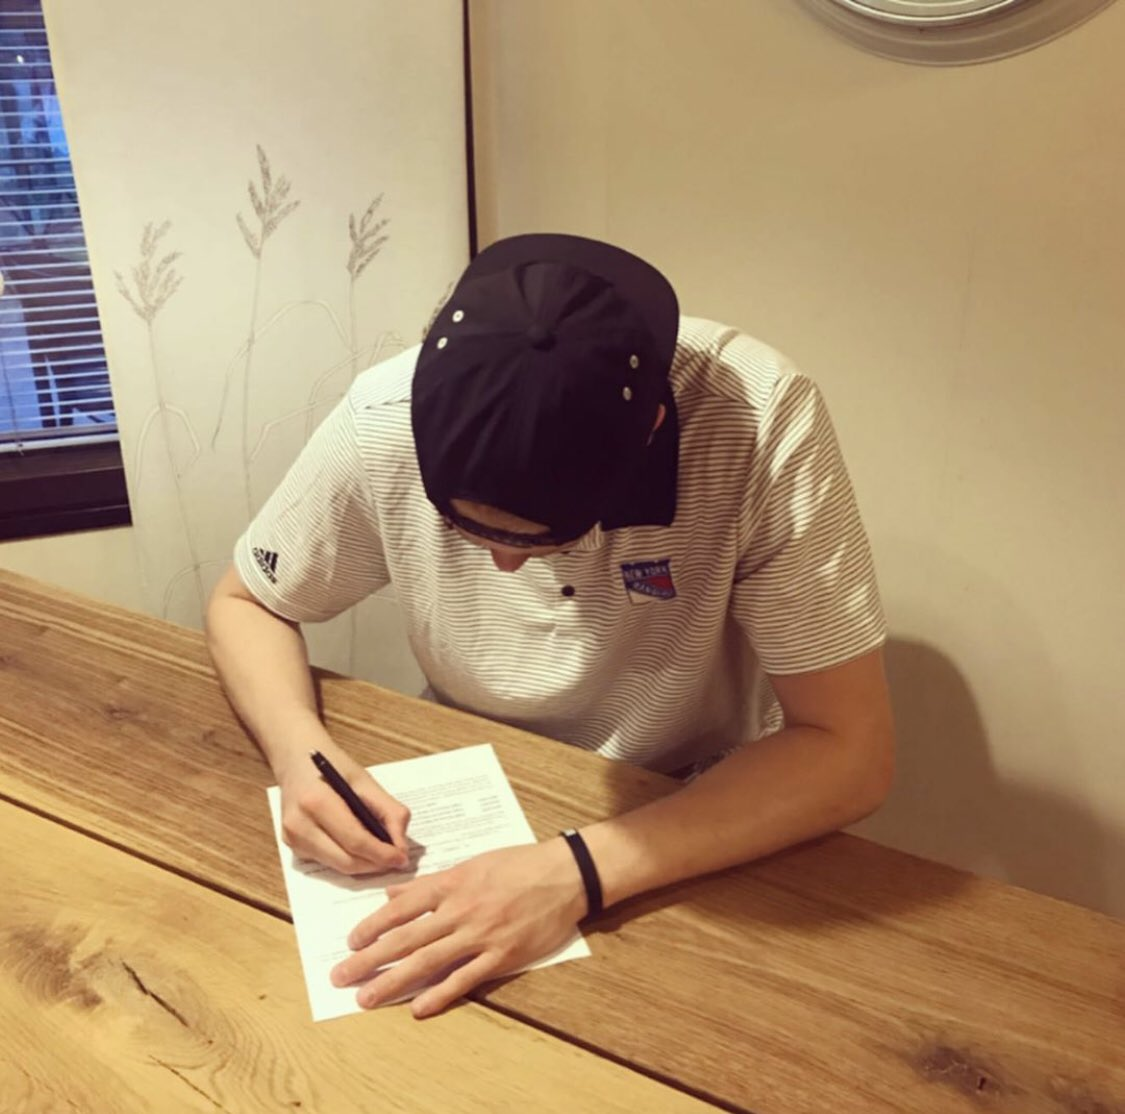 """""""I'm so happy and excited to sign my first NHL contract with the New York Rangers and I want to thank my family, friends, teammates and fans for supporting me."""" - Kaapo Kakko #NYR<br>http://pic.twitter.com/Mi3RfSceo2"""